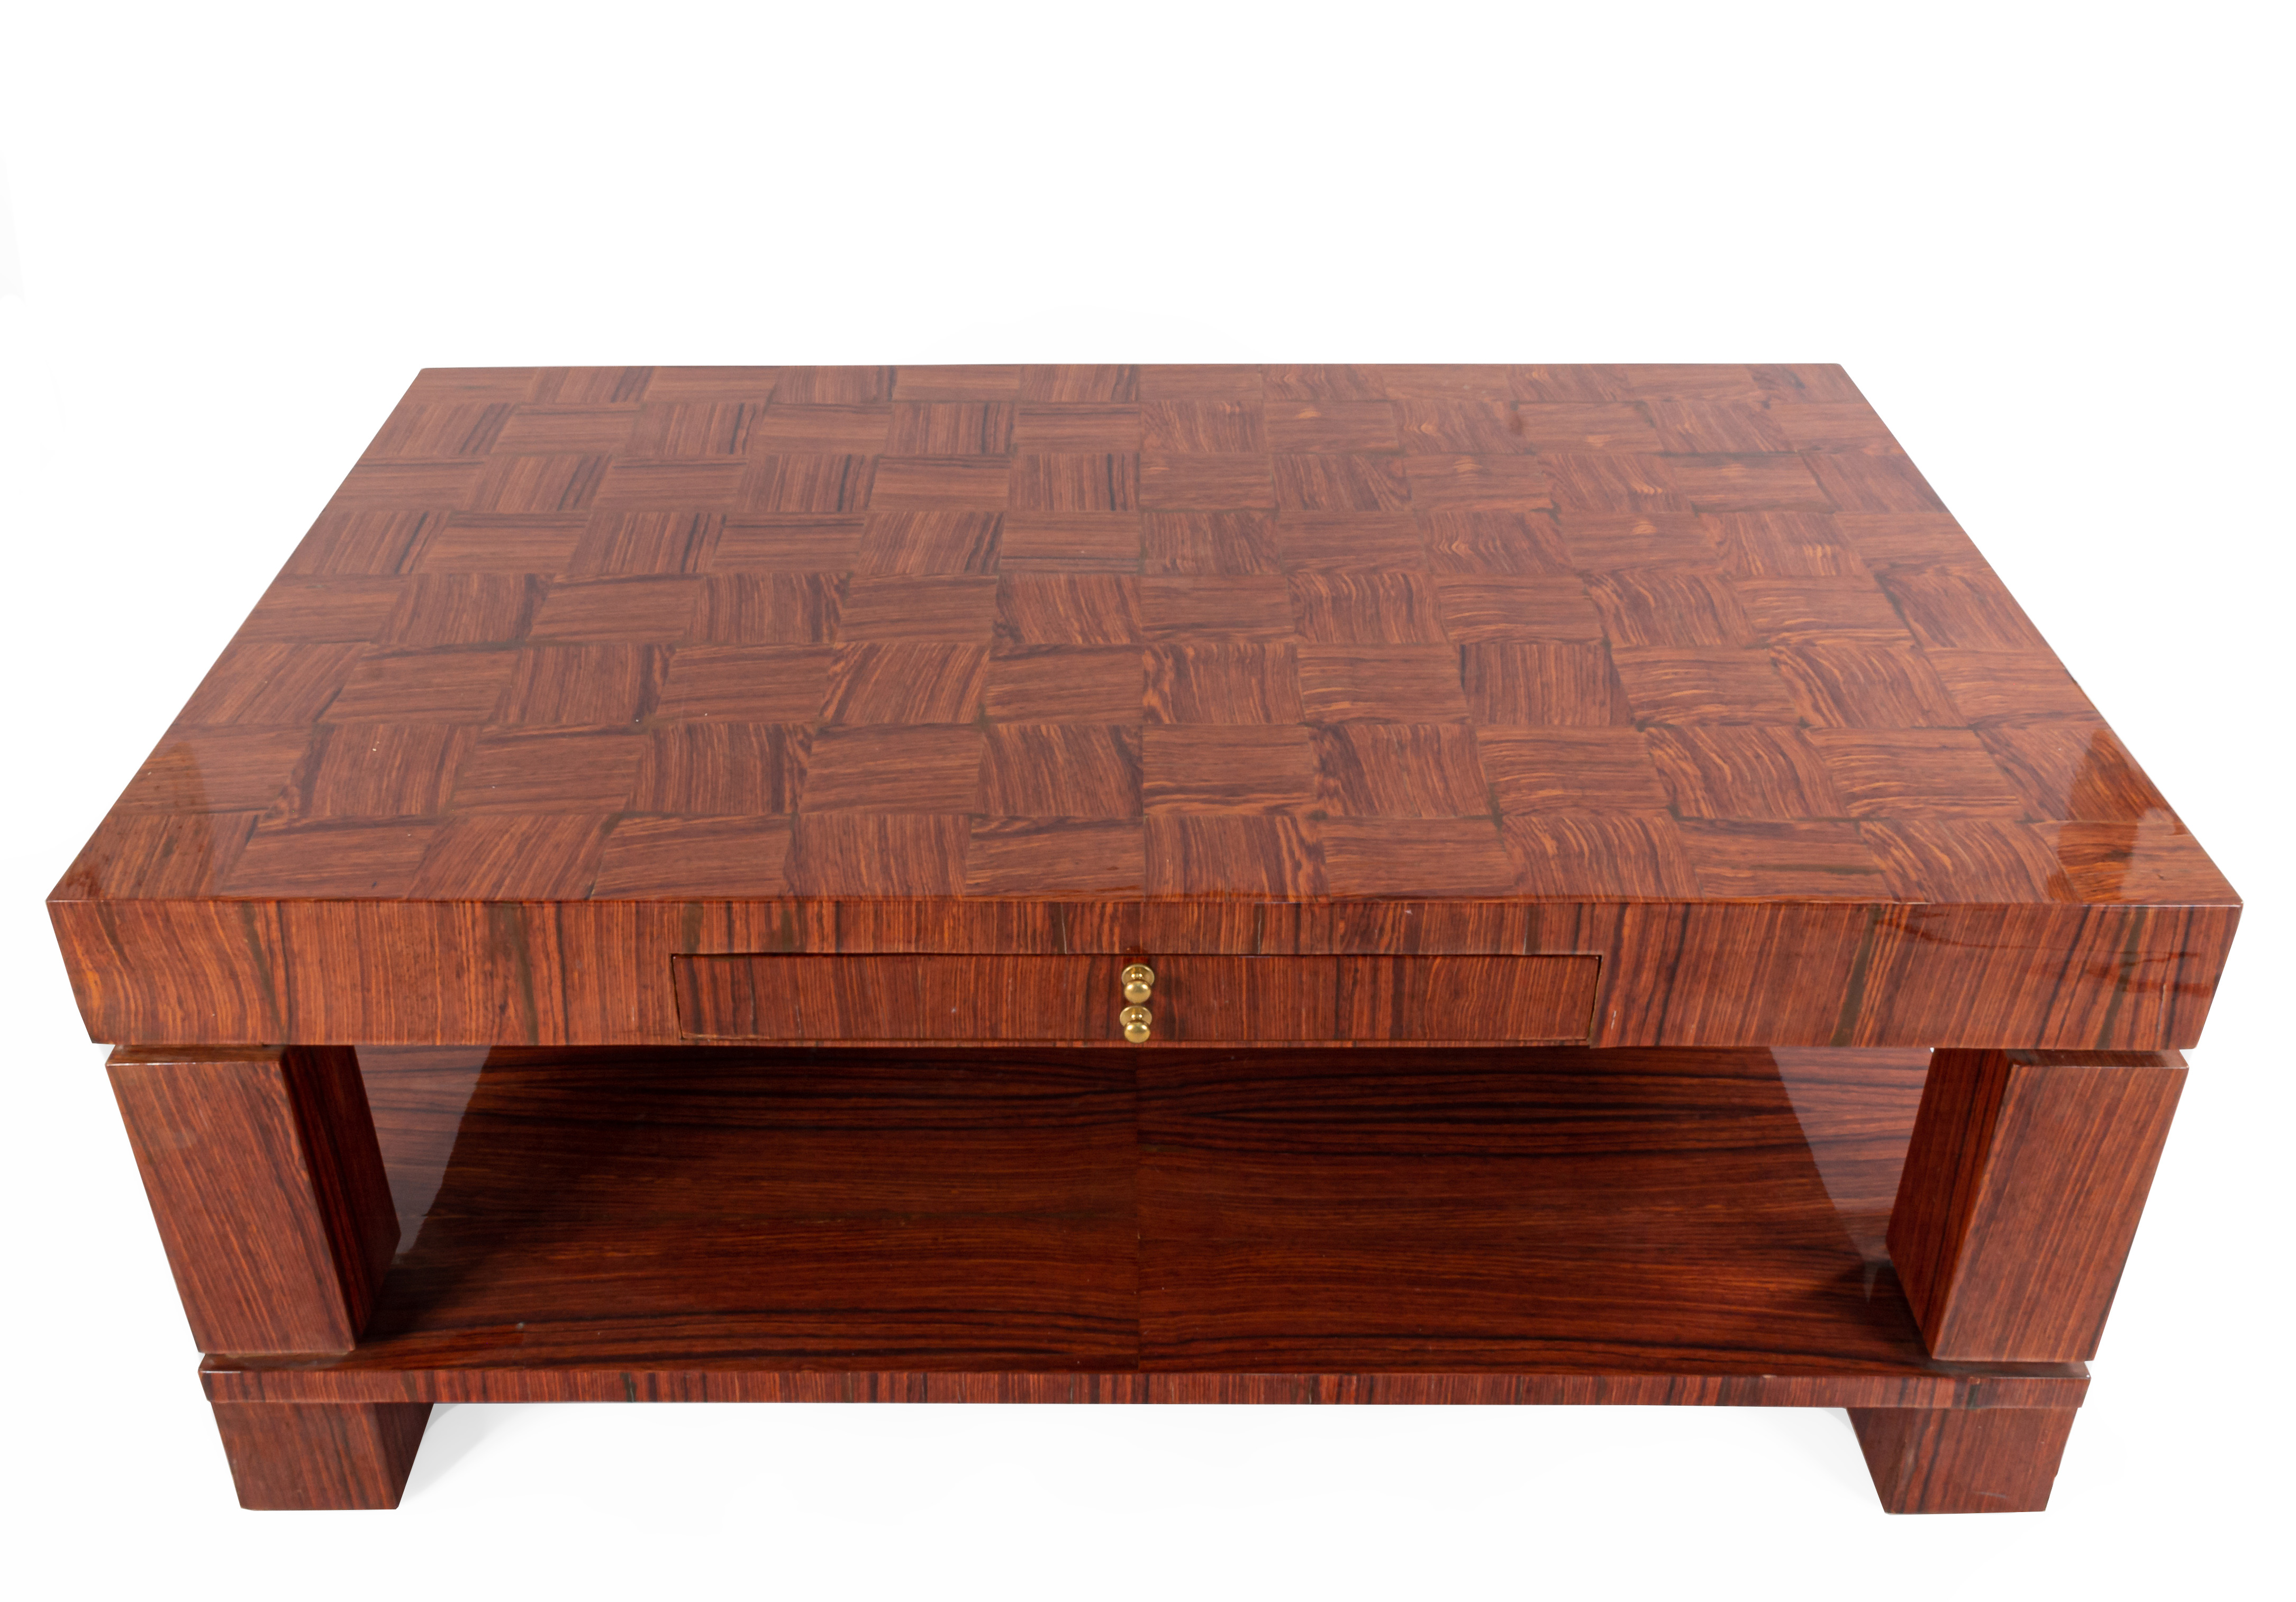 ... Rectangular Rosewood Coffee Table With Square Legs Supporting A Shelf  And A Checkerboard Design Top With 2 Side Drawers Having A Ring Handle  061210 ...